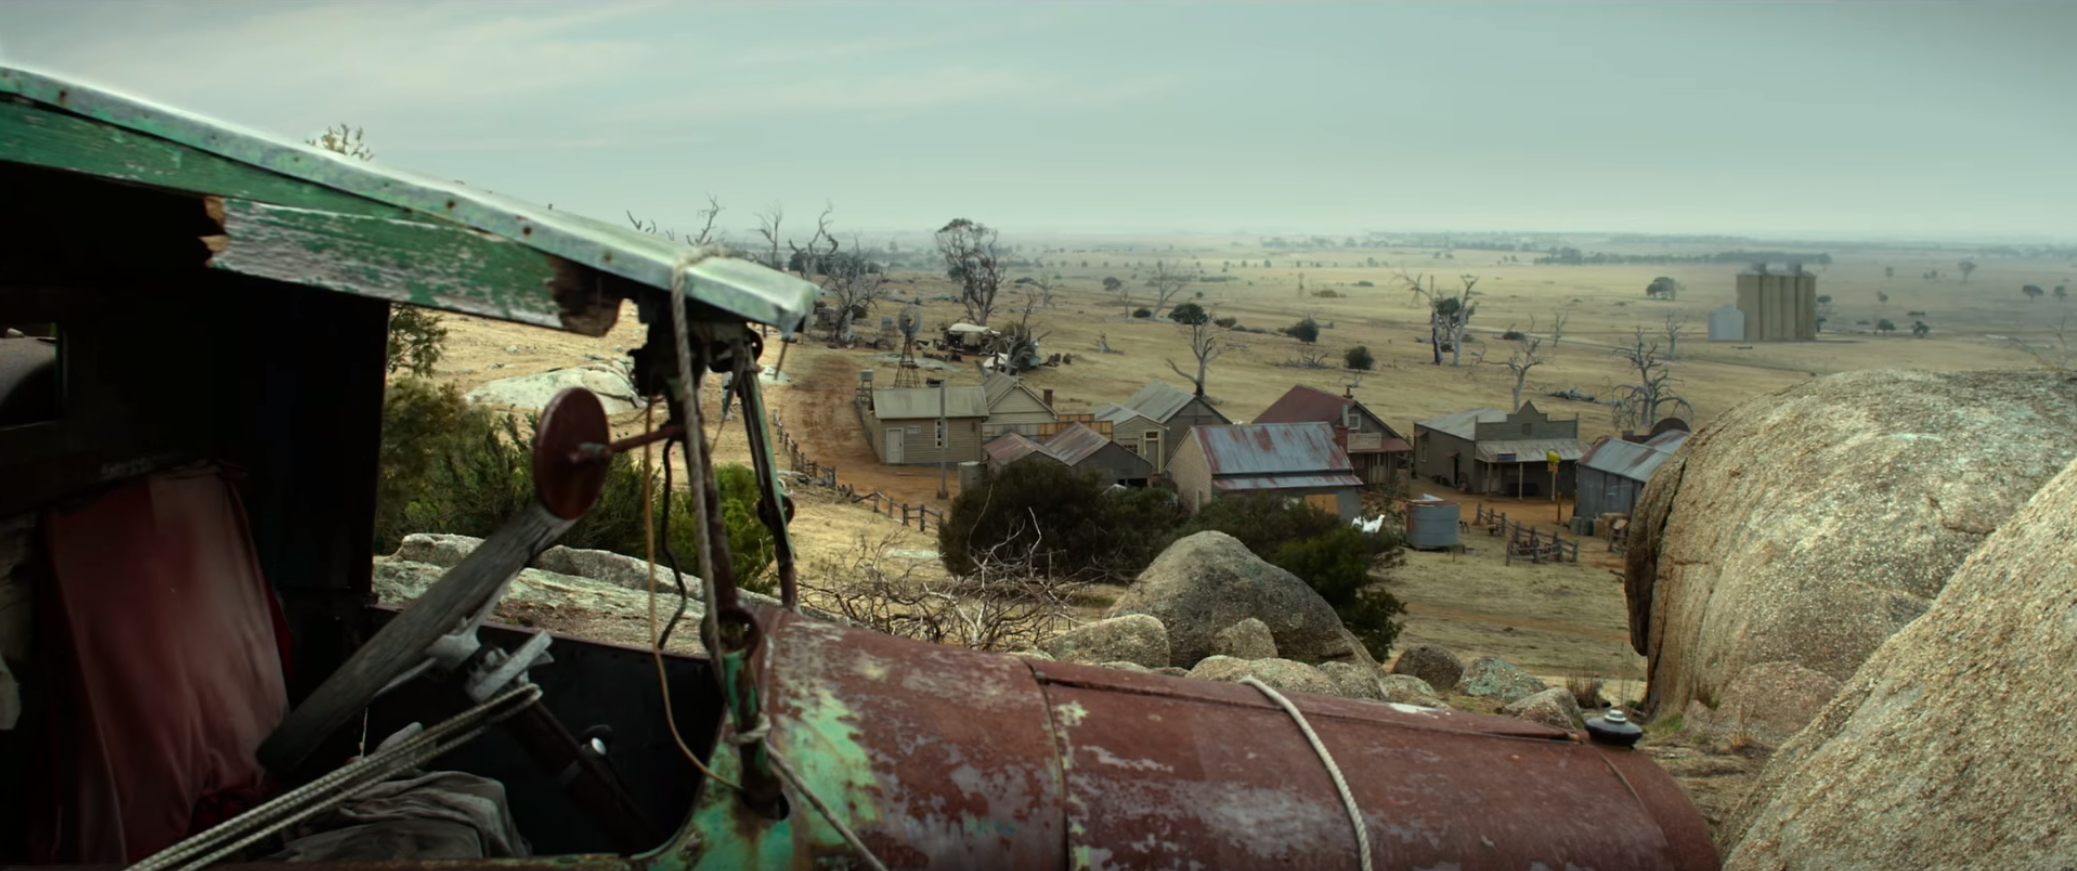 A shot from The Dressmaker, overlooking Dungatar, the town where the film is set.